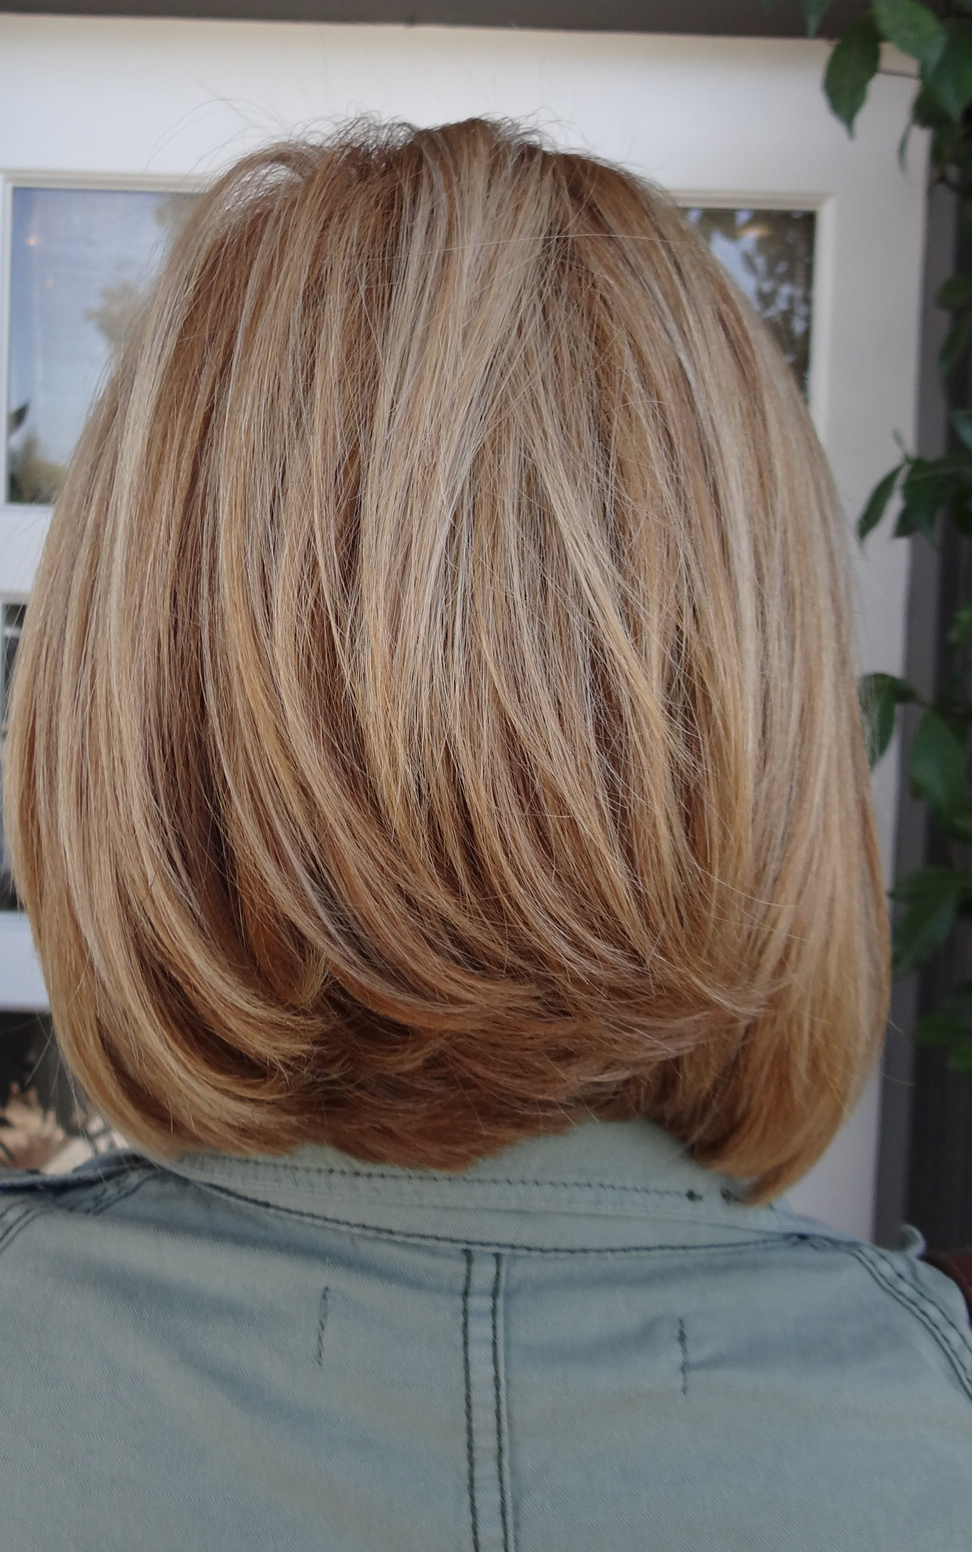 Before And After Tone Brassy Hair Neil George